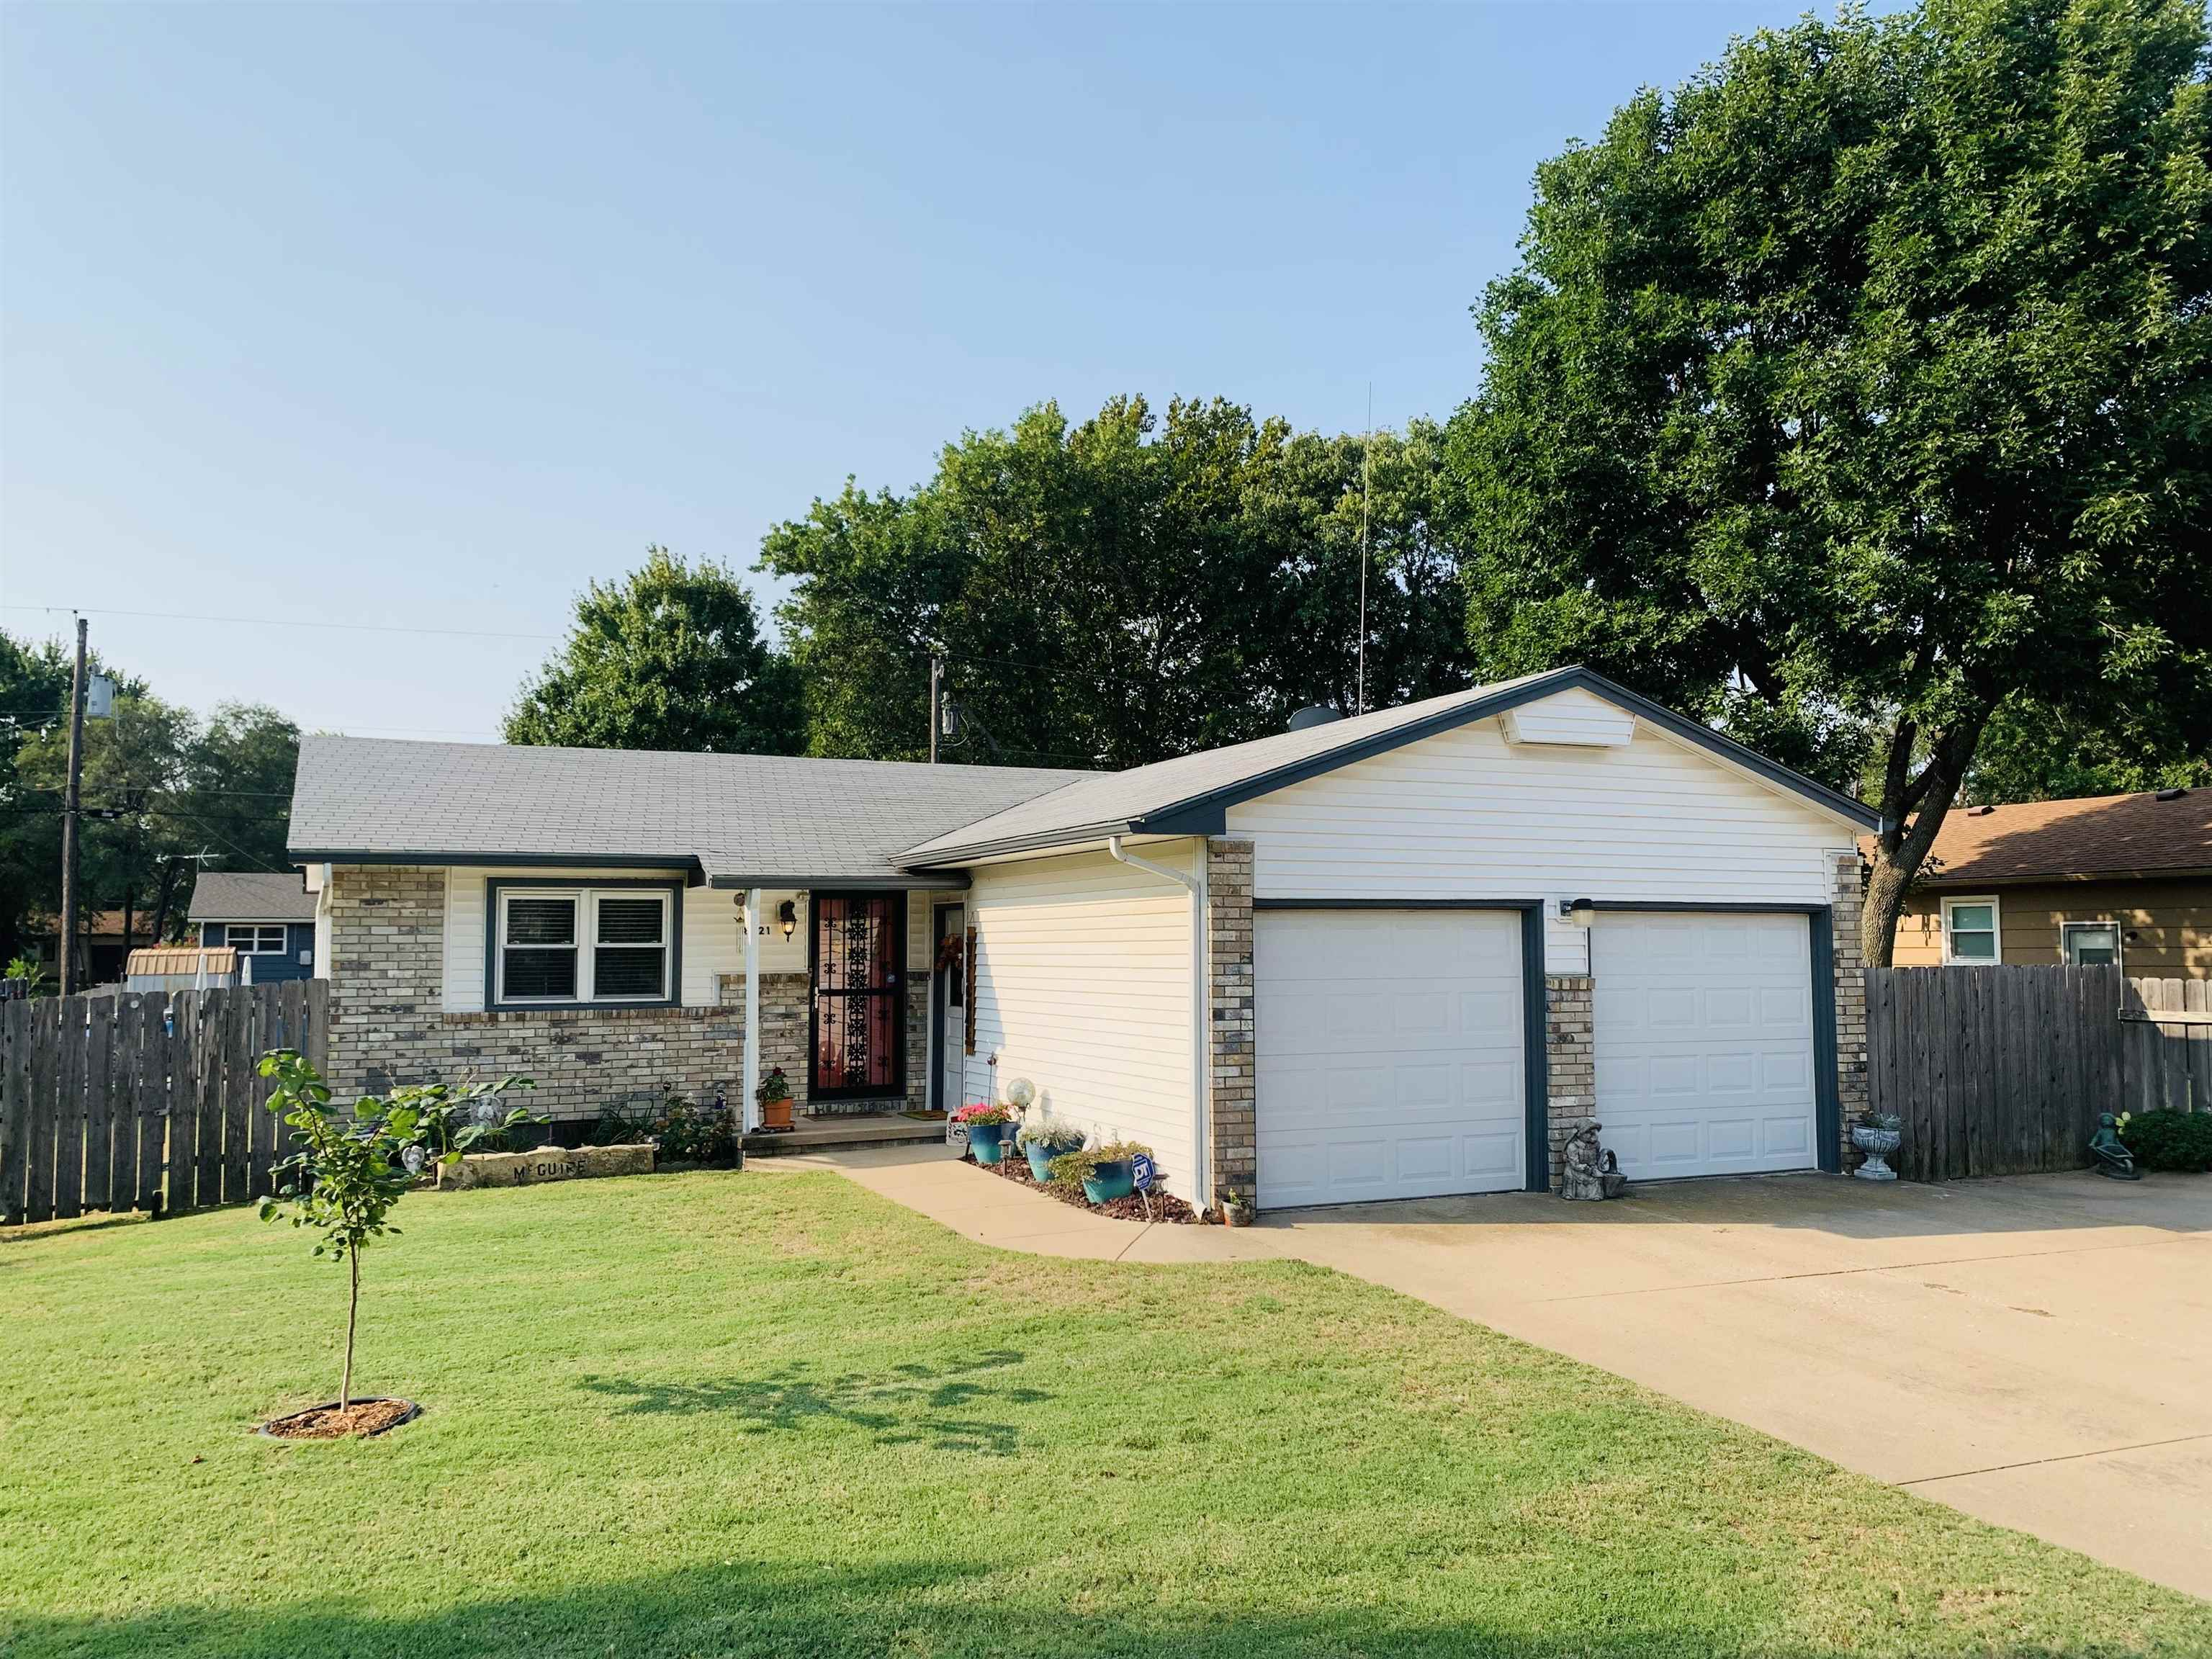 This cozy ranch home located in west Wichita offers 2 bedrooms, 1.5 bathrooms, open kitchen and dini